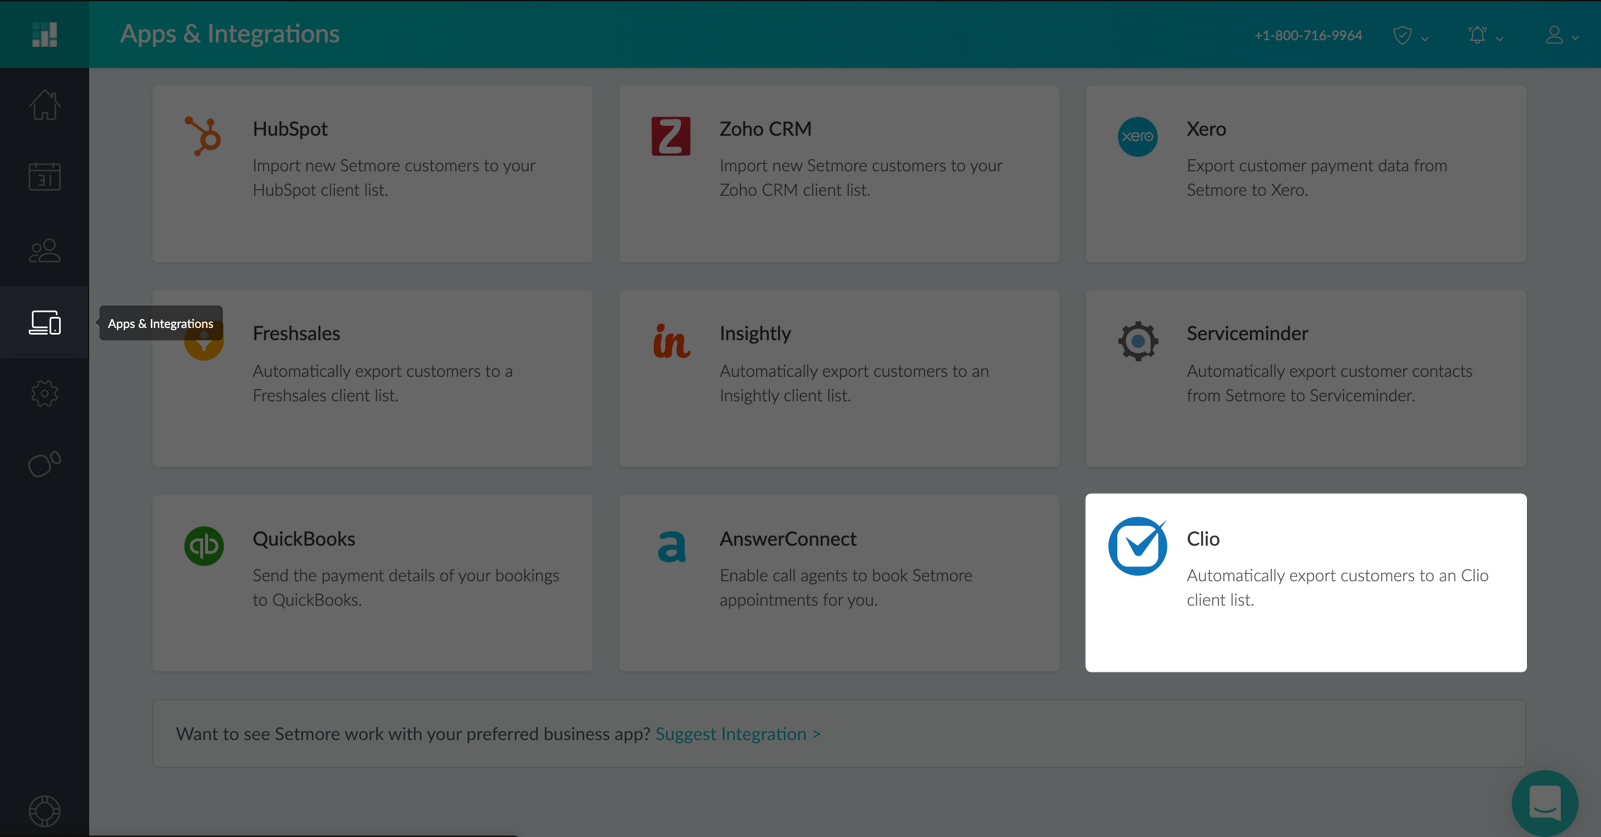 The Clio integration card in the Apps & Integrations menu